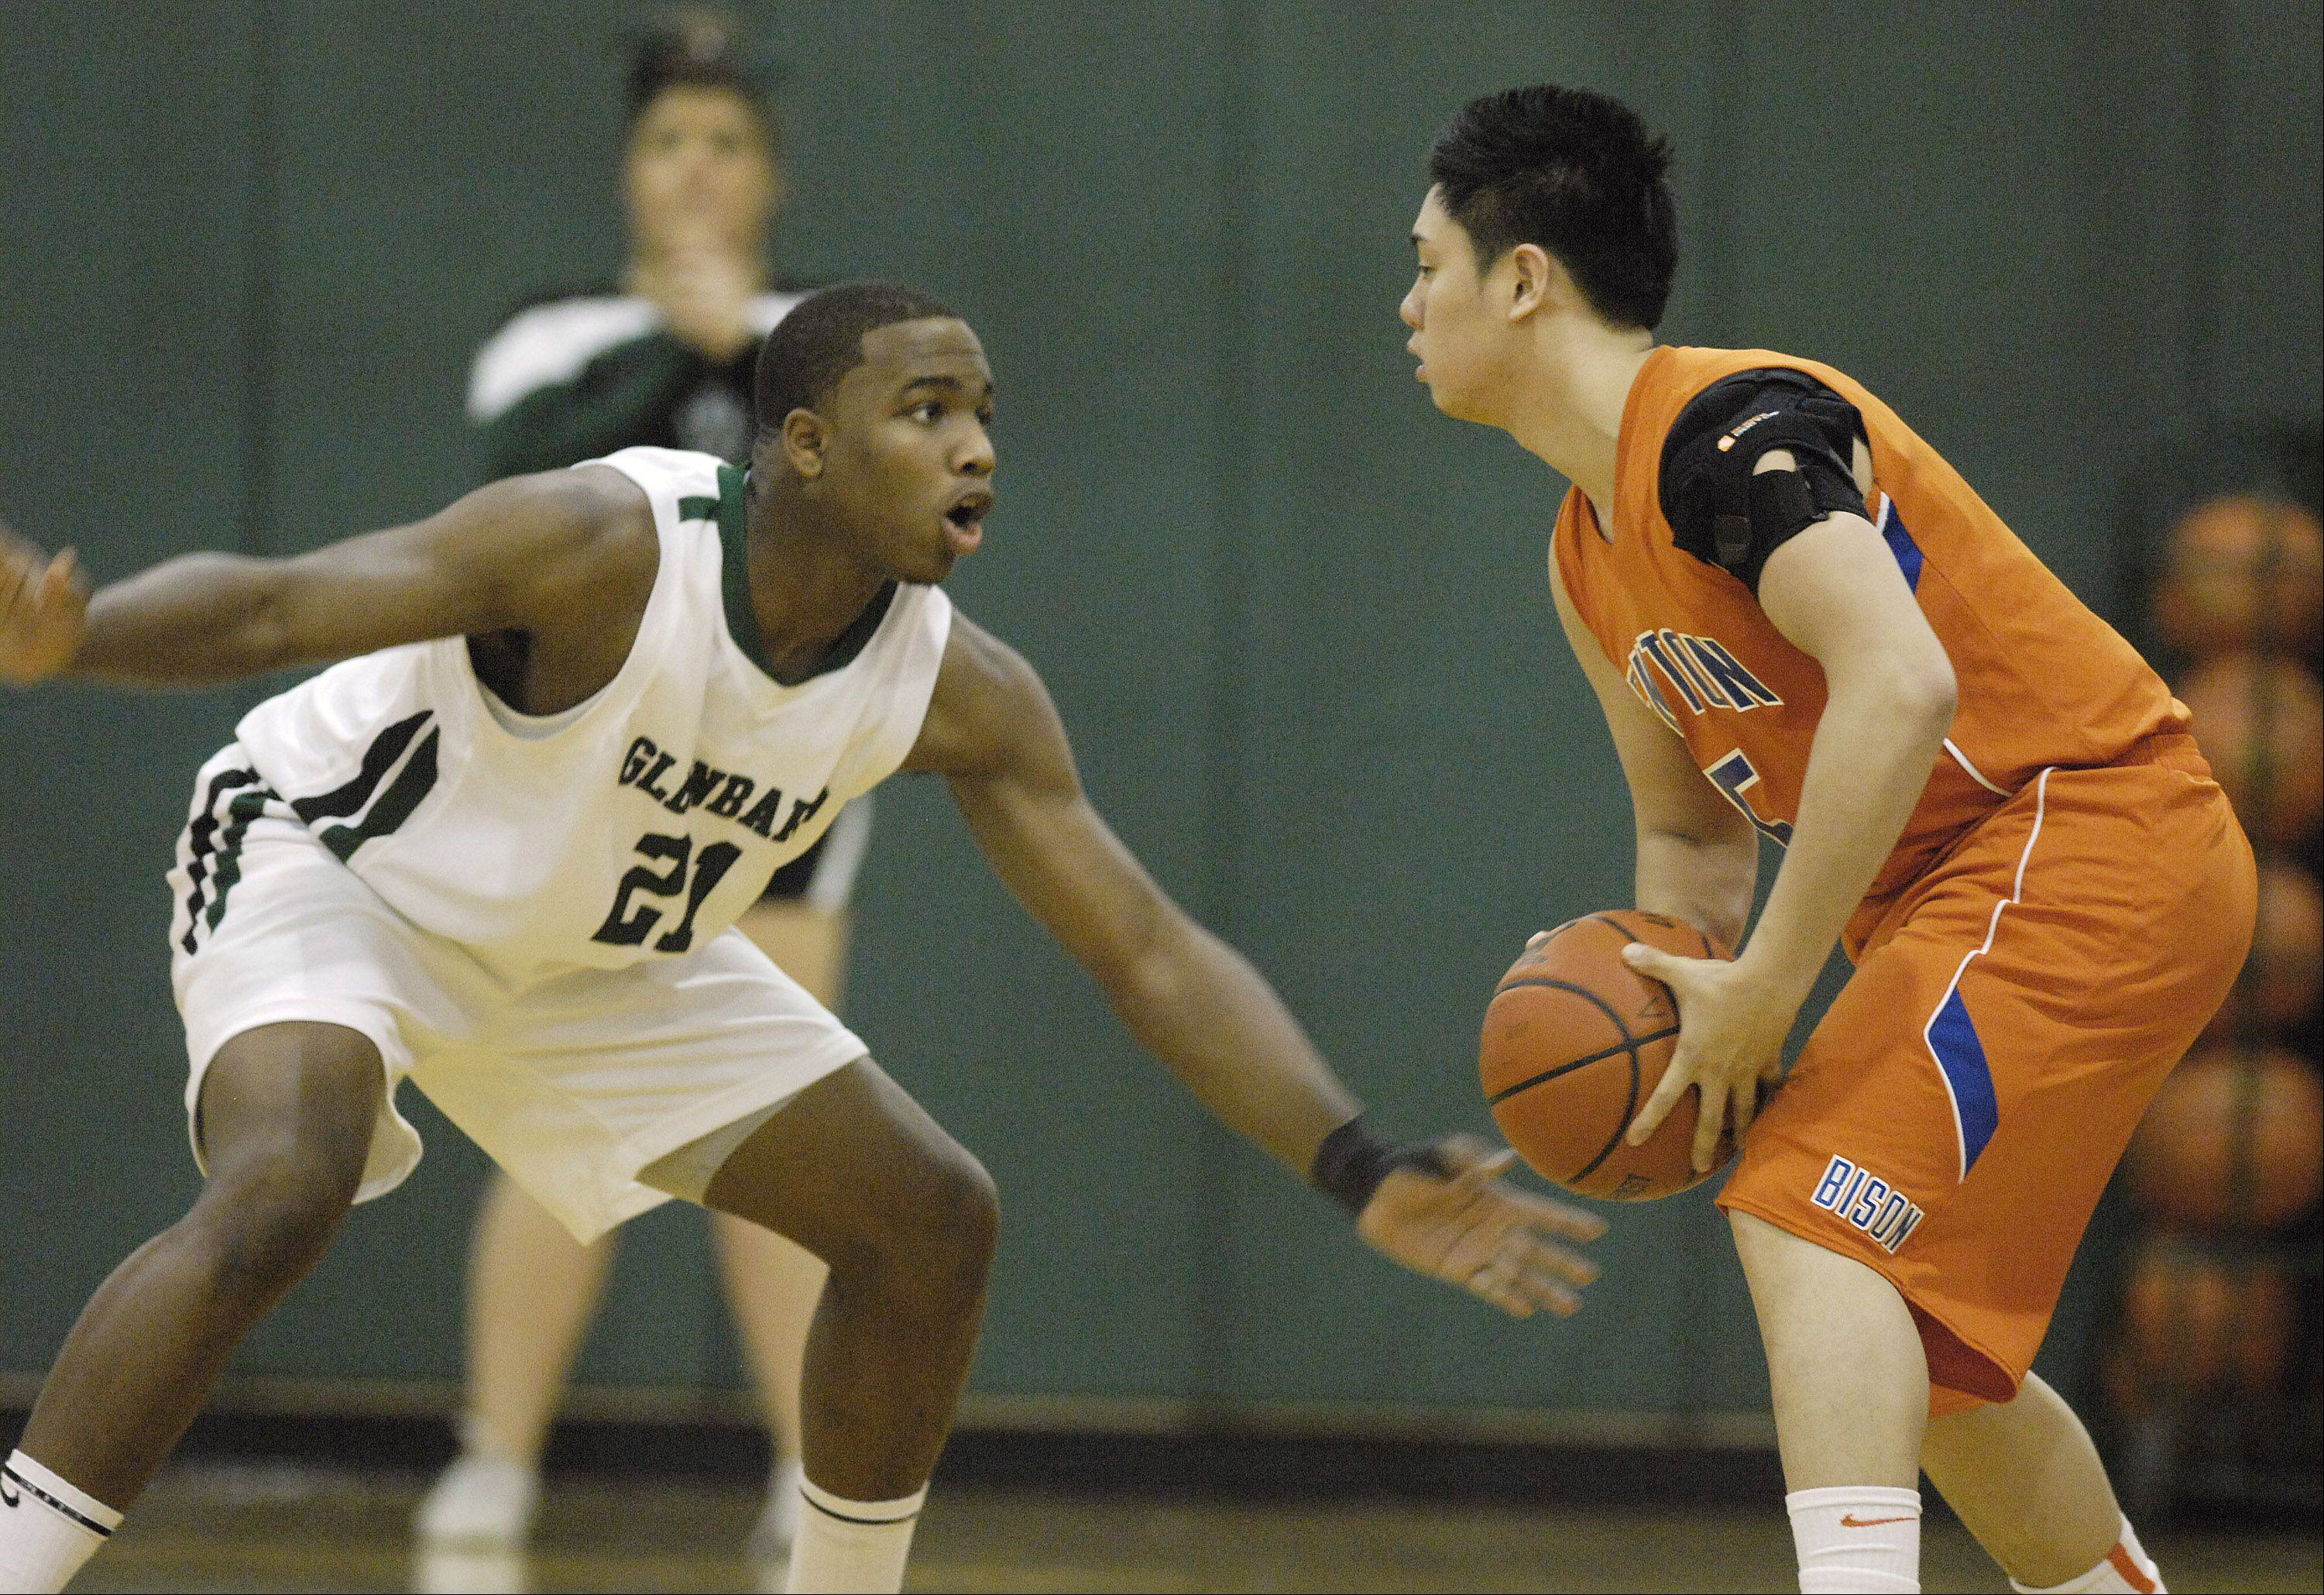 Jeff Levesque of Glenbard West guards Herman DeGuia of Fenton during the 10th annual Glenbard West boys basketball Christmas Classic, Wednesday, December 28, 2011 in Glen Ellyn.